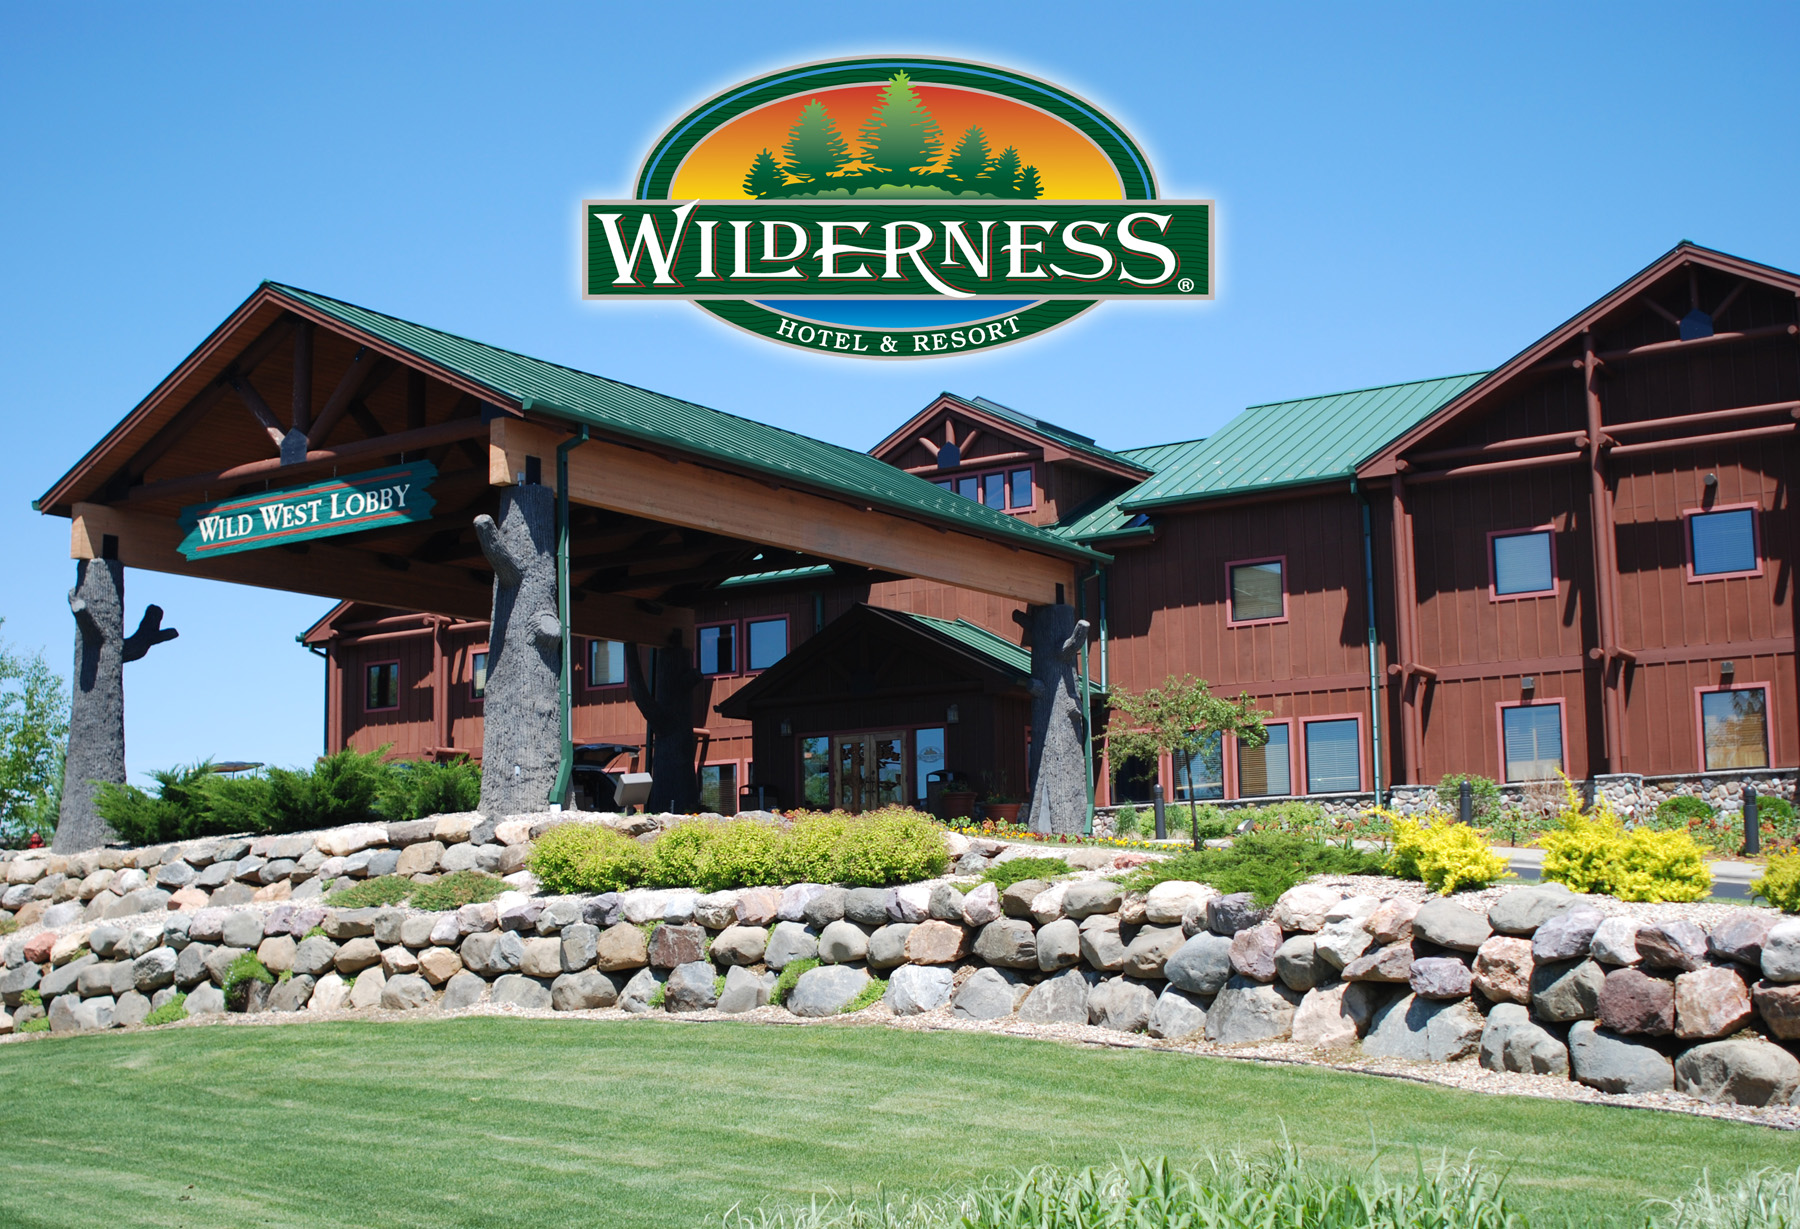 Find Wisconsin Dells restaurants. Read the latest reviews, view restaurant photos, see menus, and make online restaurant reservations in Wisconsin Dells. Specials at top restaurants in Wisconsin Dells Enjoy great restaurant specials, set menus, and more. Quick View The Boathouse on Naples Bay.